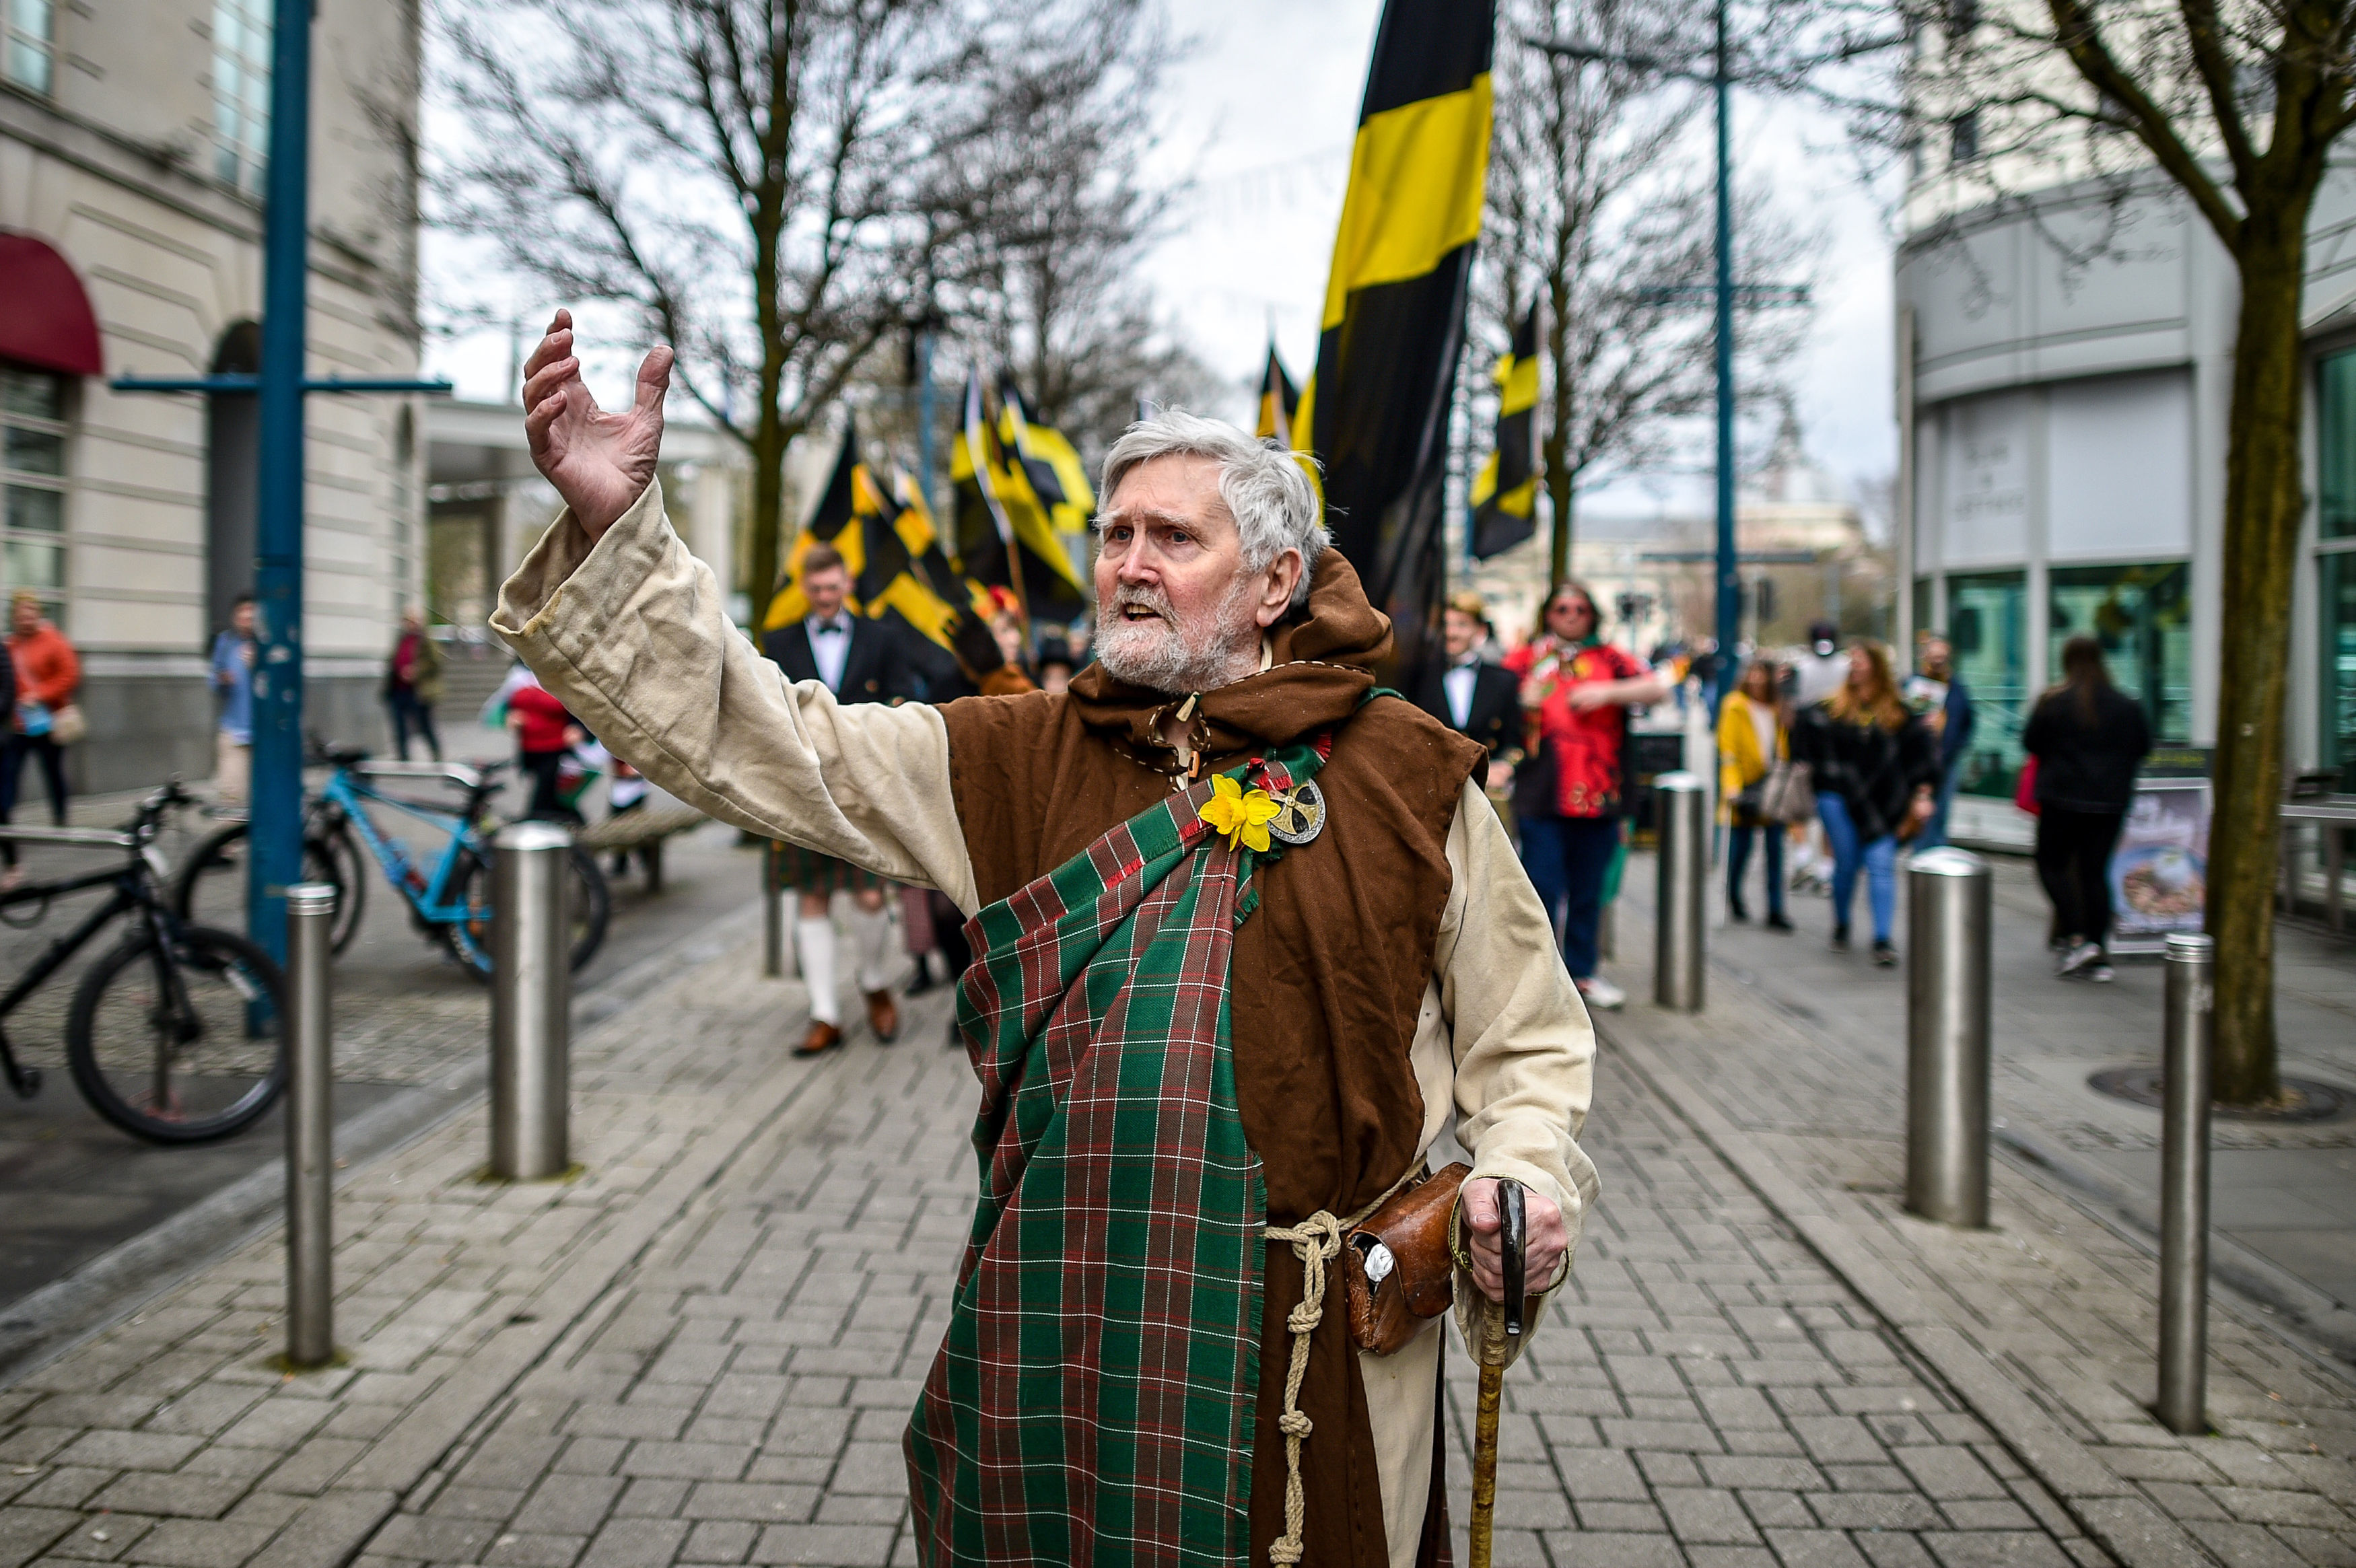 A man dressed as St David leads the way during a St David's Day Parade in Cardiff